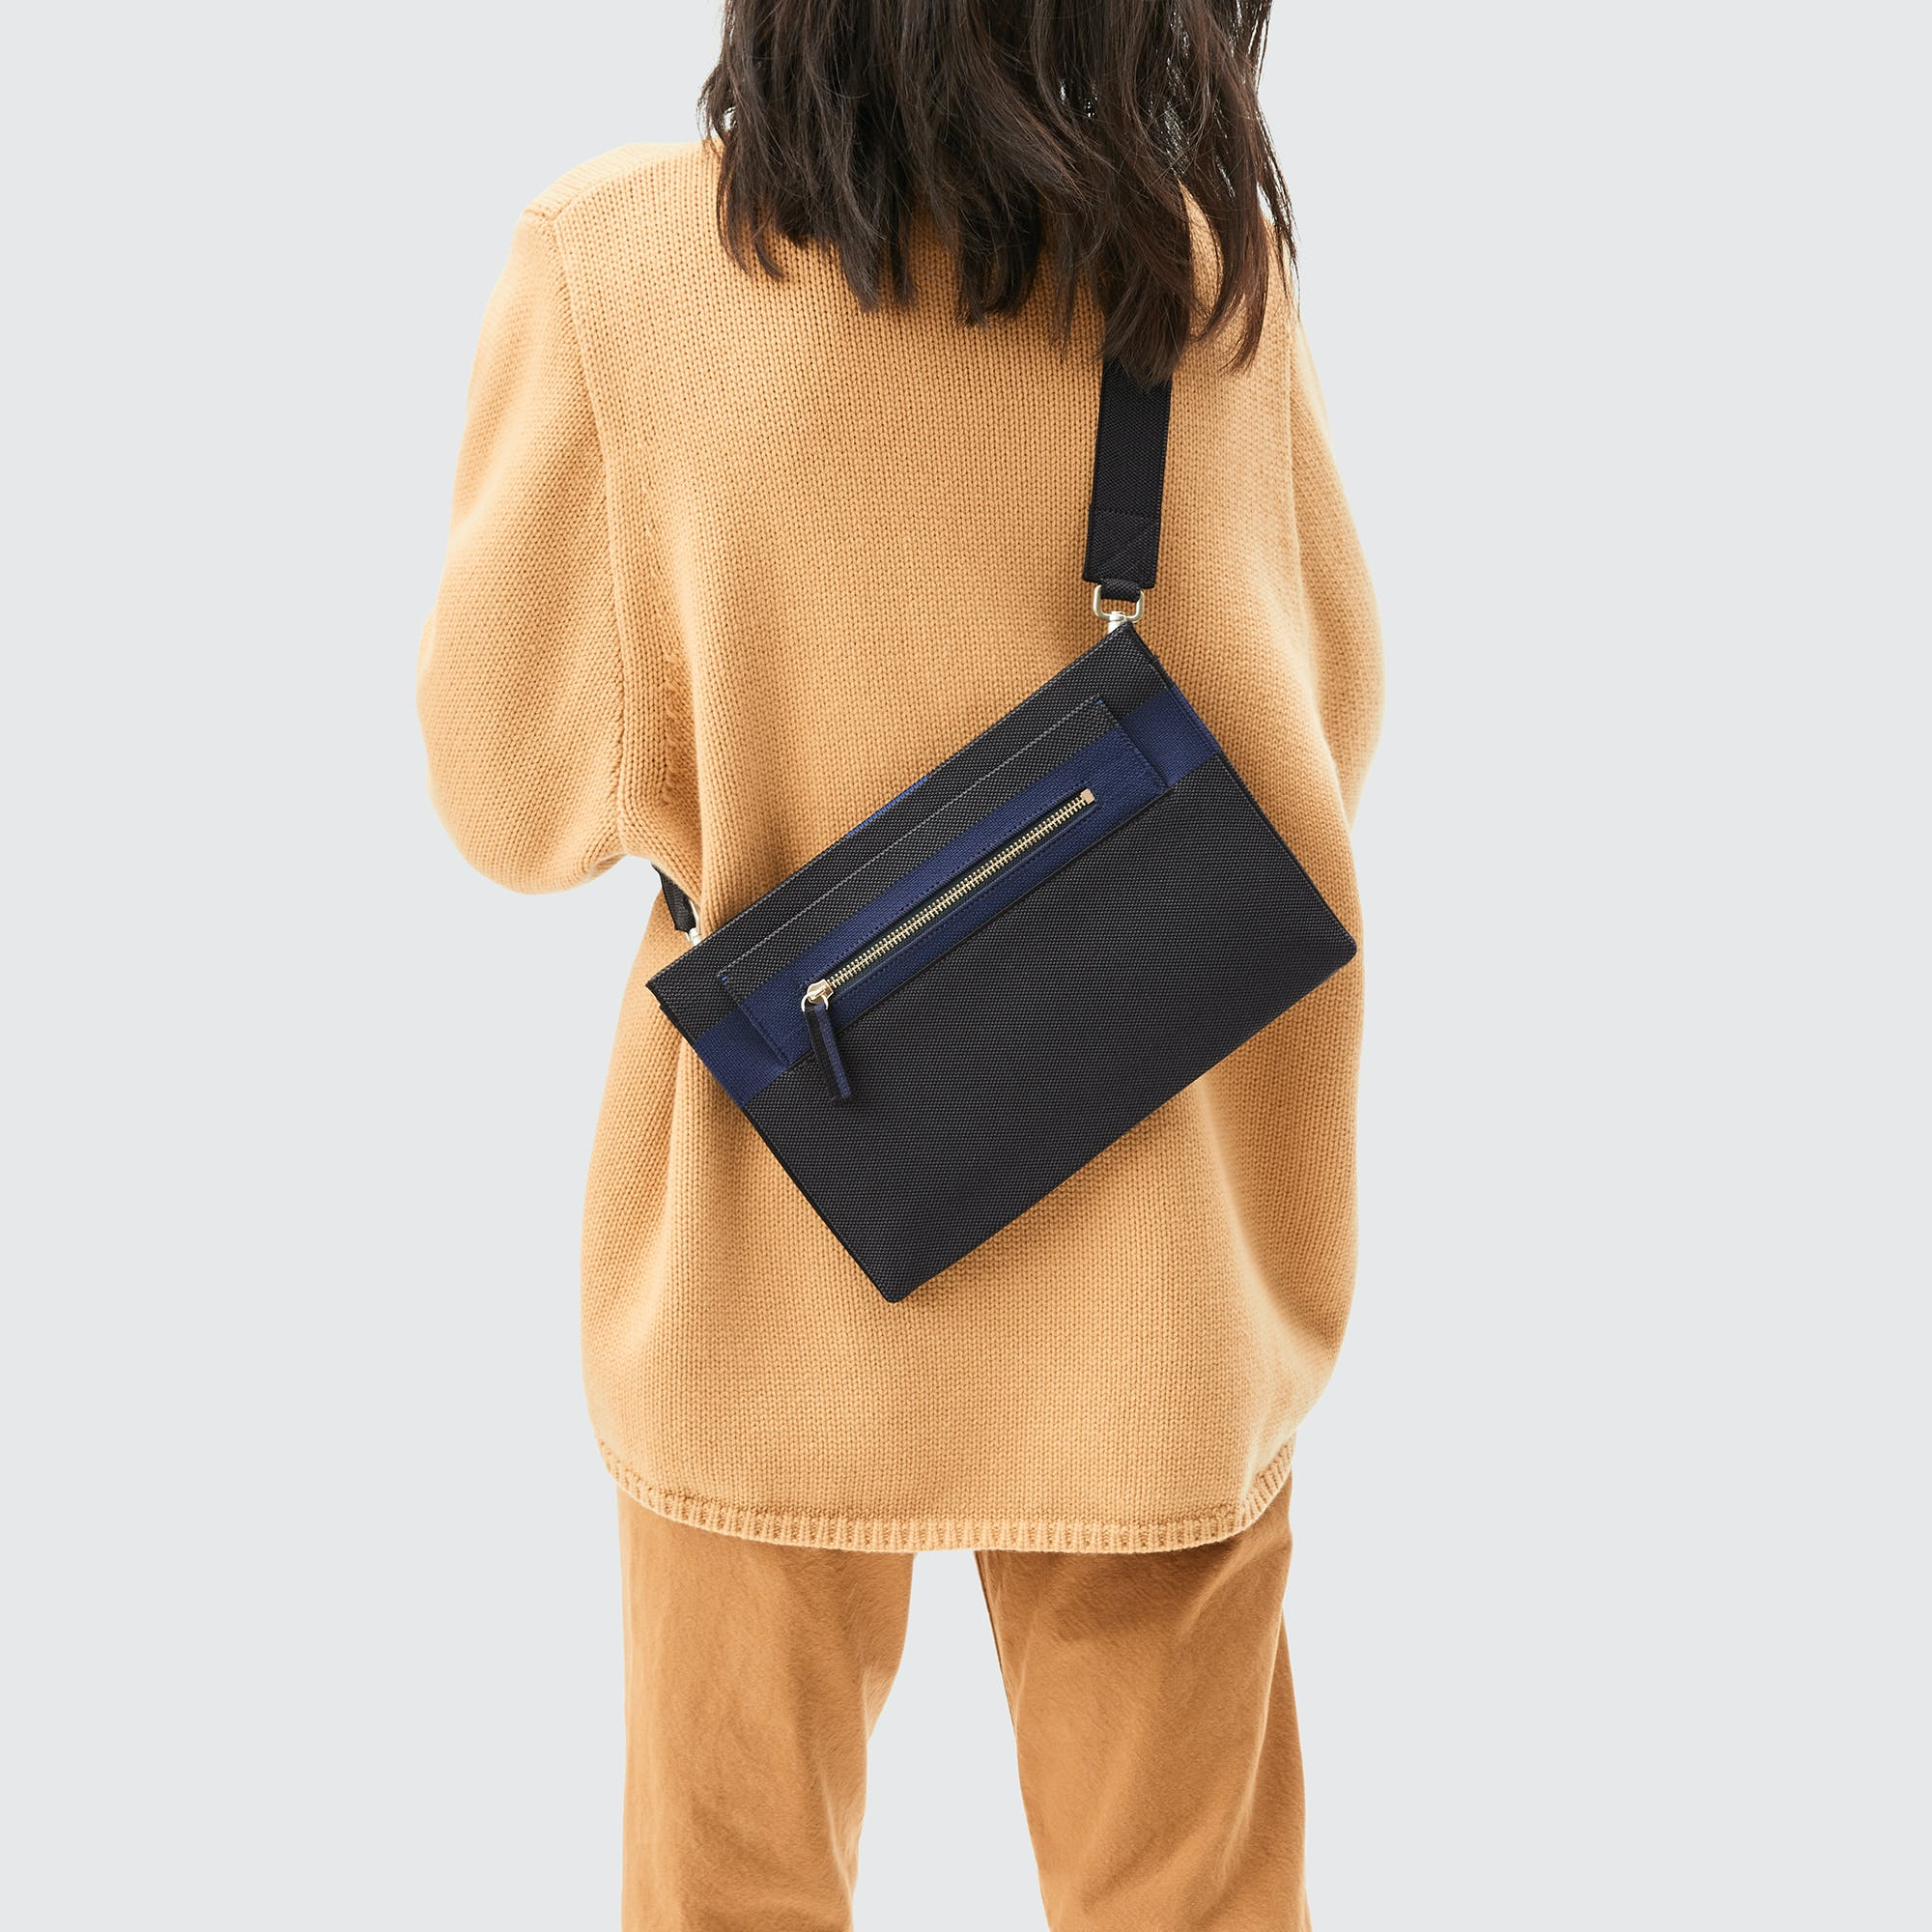 The Dual-Zip Crossbody in Slate Black shown from the front.